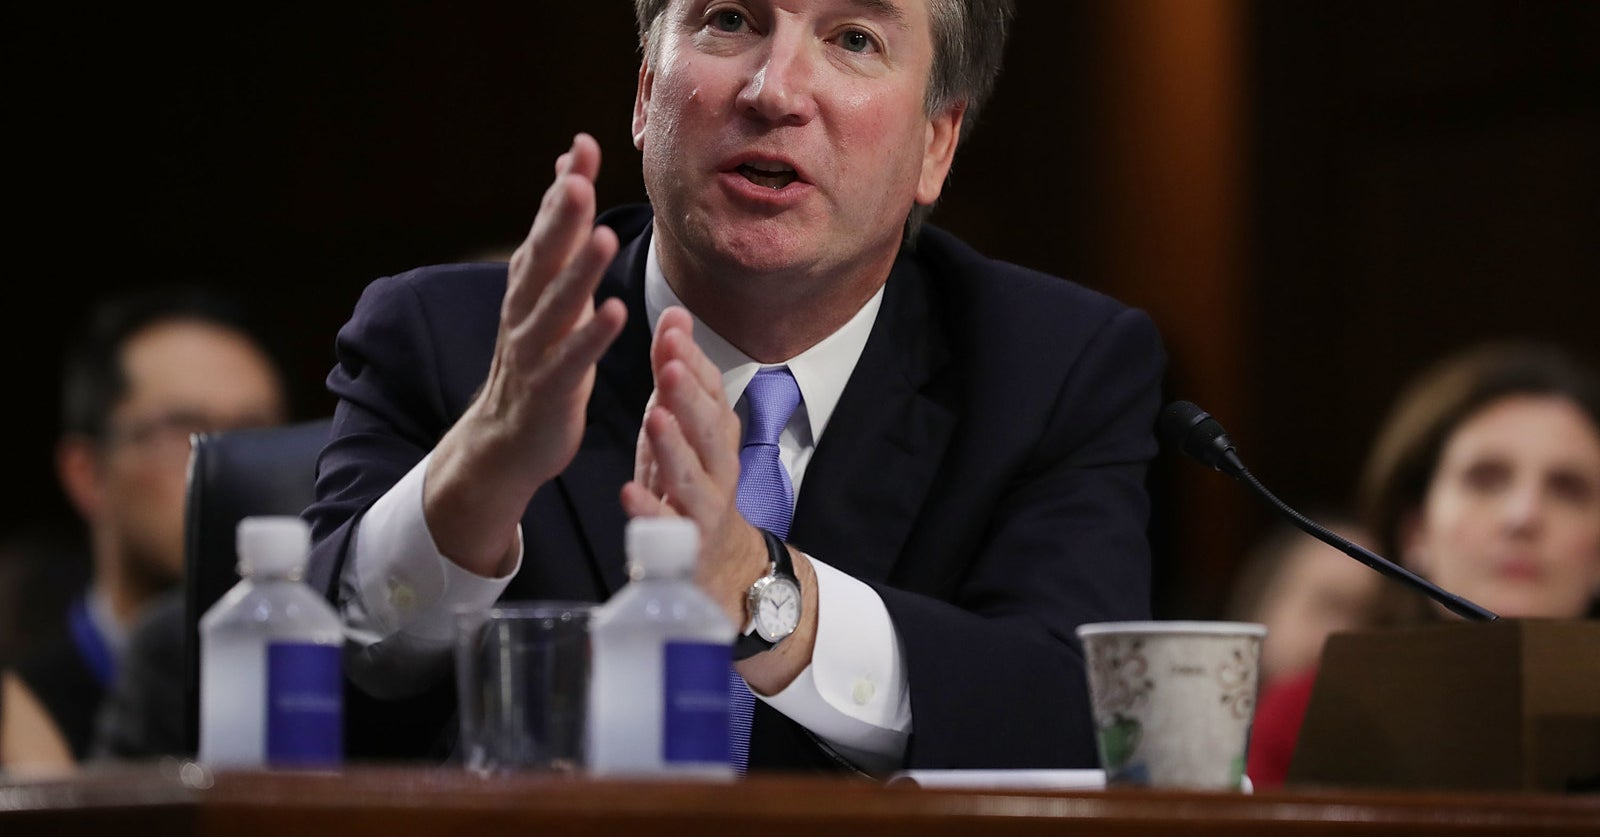 The Woman Accusing Brett Kavanaugh Of Sexual Assault Wants The FBI To Investigate Before She Testifies In Congress